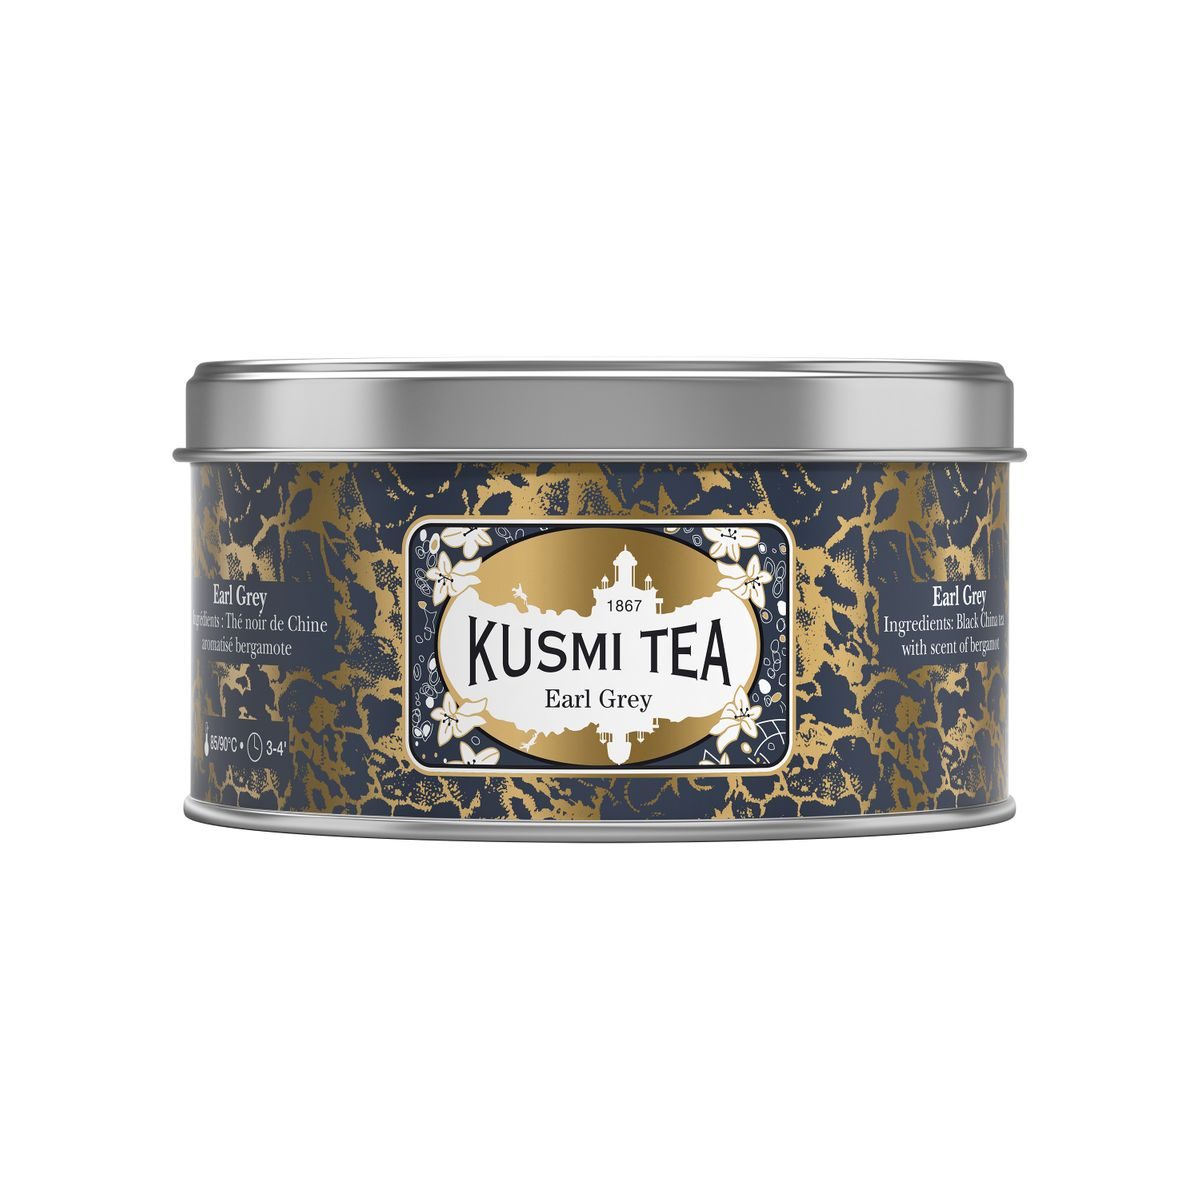 THÉ EARL GREY - 125G - KUSMI TEA